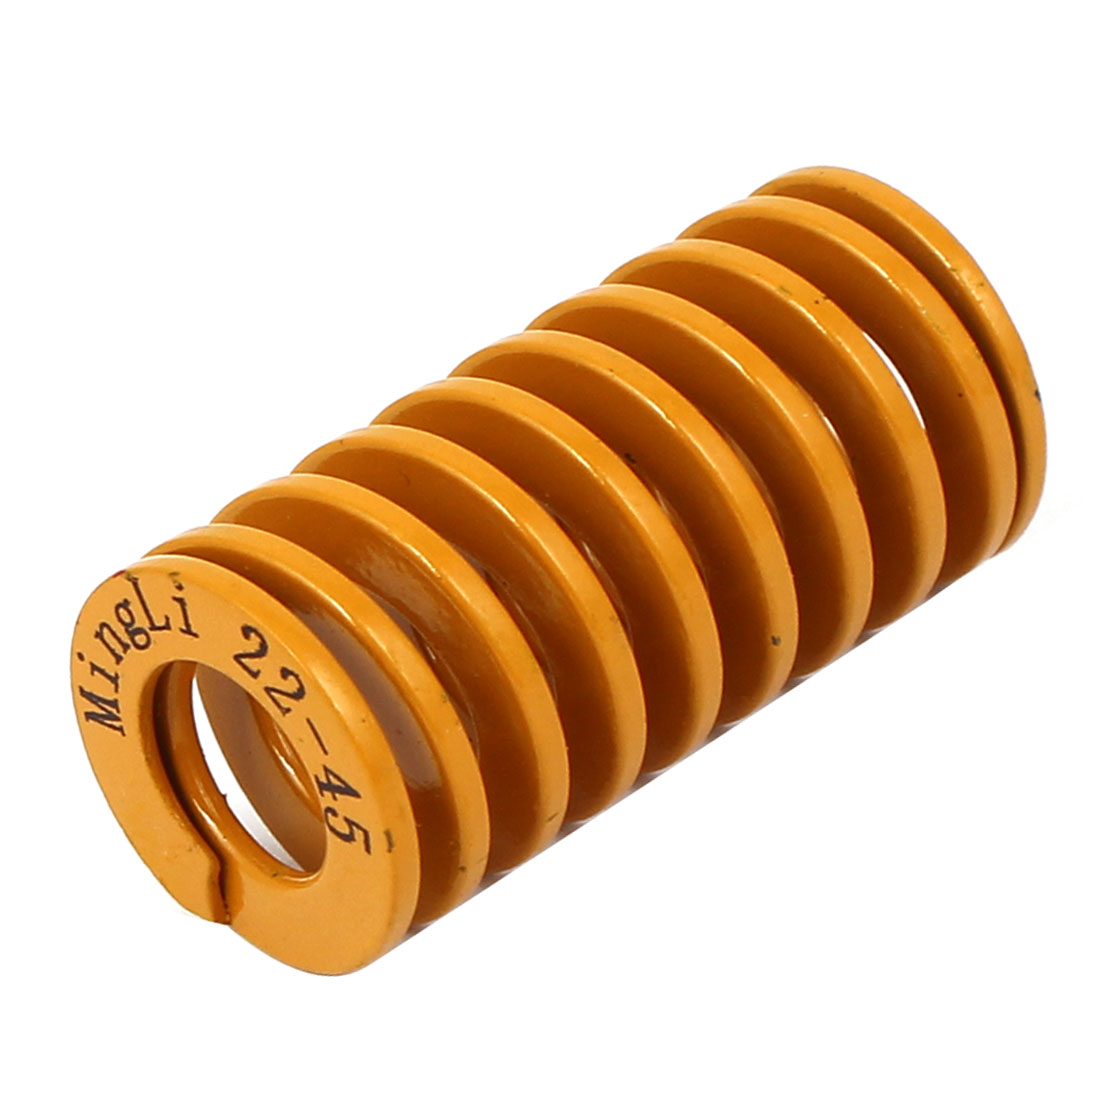 22mm x 45mm Tubular Section Mold Mould Die Spring Yellow